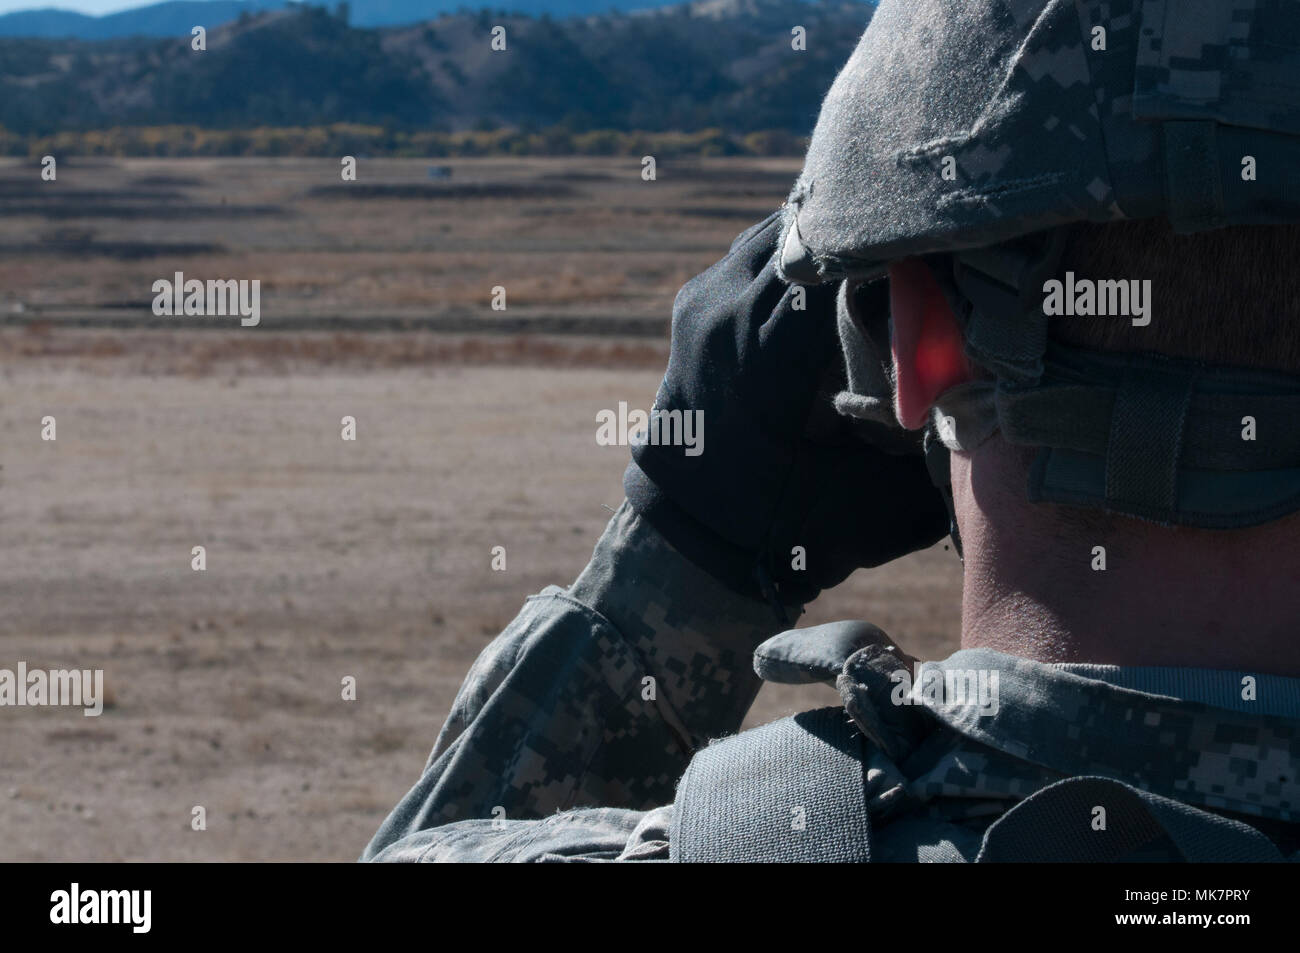 M19 Grenade Machine Gun Training High Resolution Stock Photography And Images Alamy